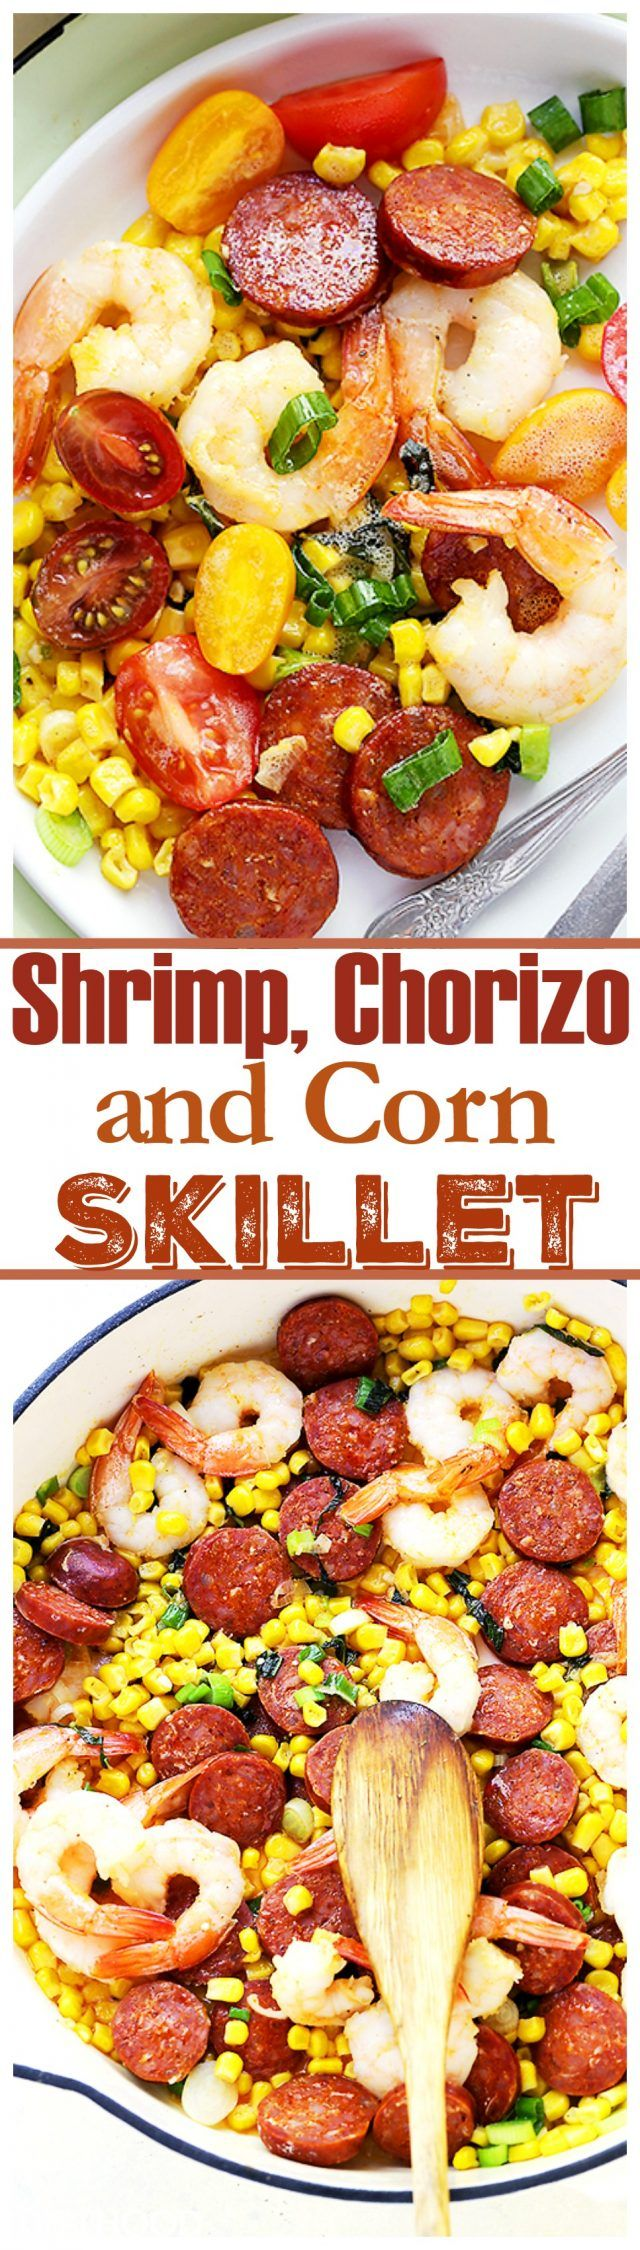 ... skillet meal packed with shrimp, tomatoes, corn and chorizo sausage